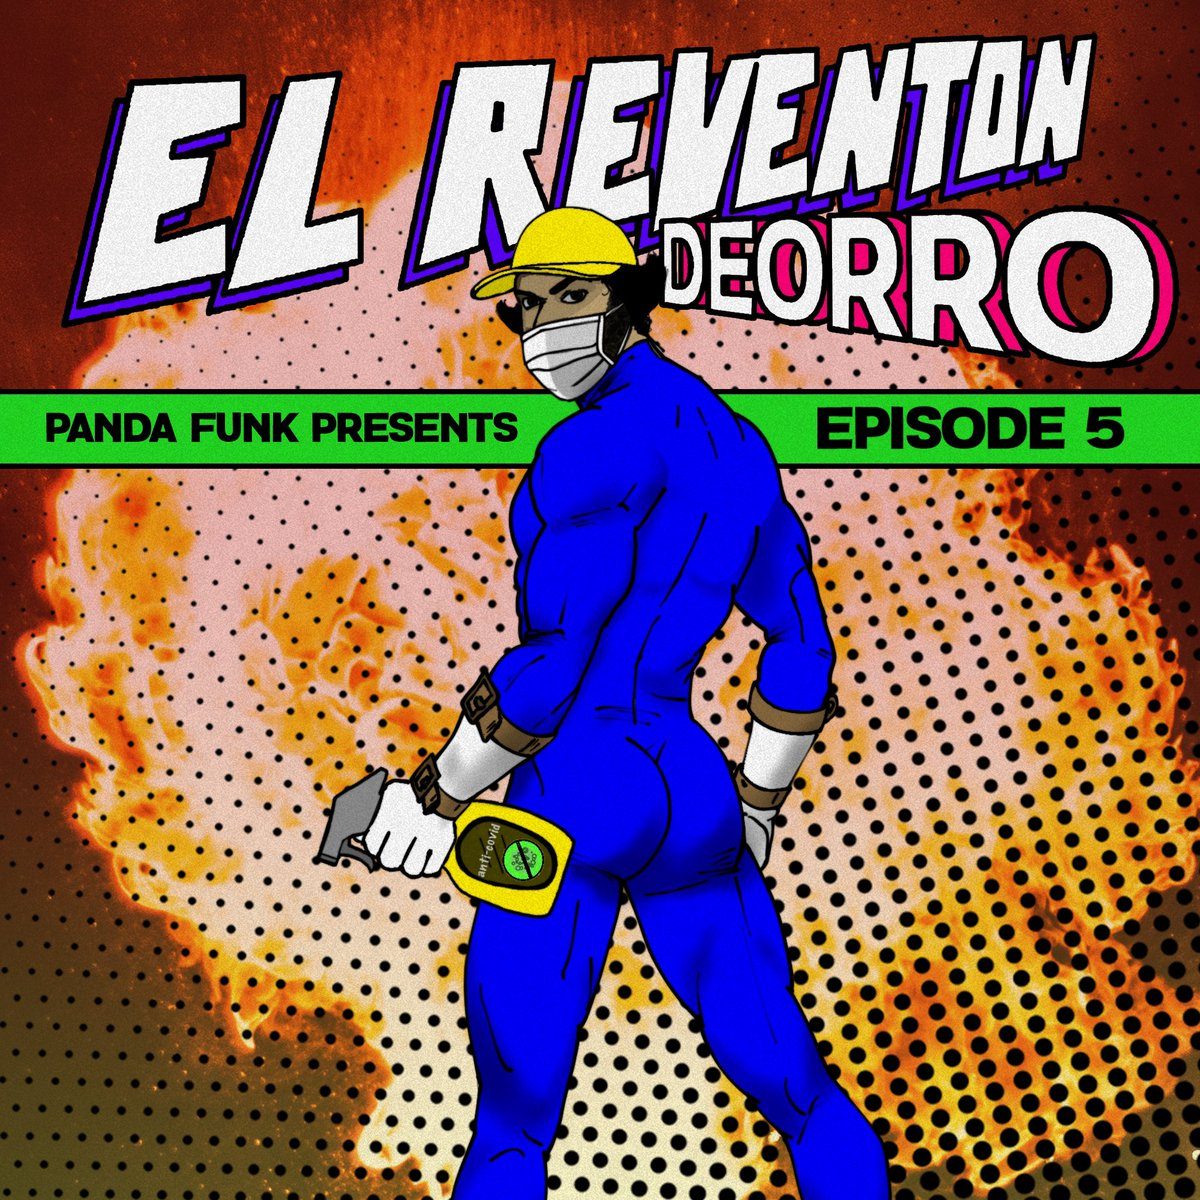 EL REVENTÓN DEORRO EP.5  LIVE NOW LINK IN BIO   https://t.co/11XOwLL7rK https://t.co/rYLFnIf4hQ